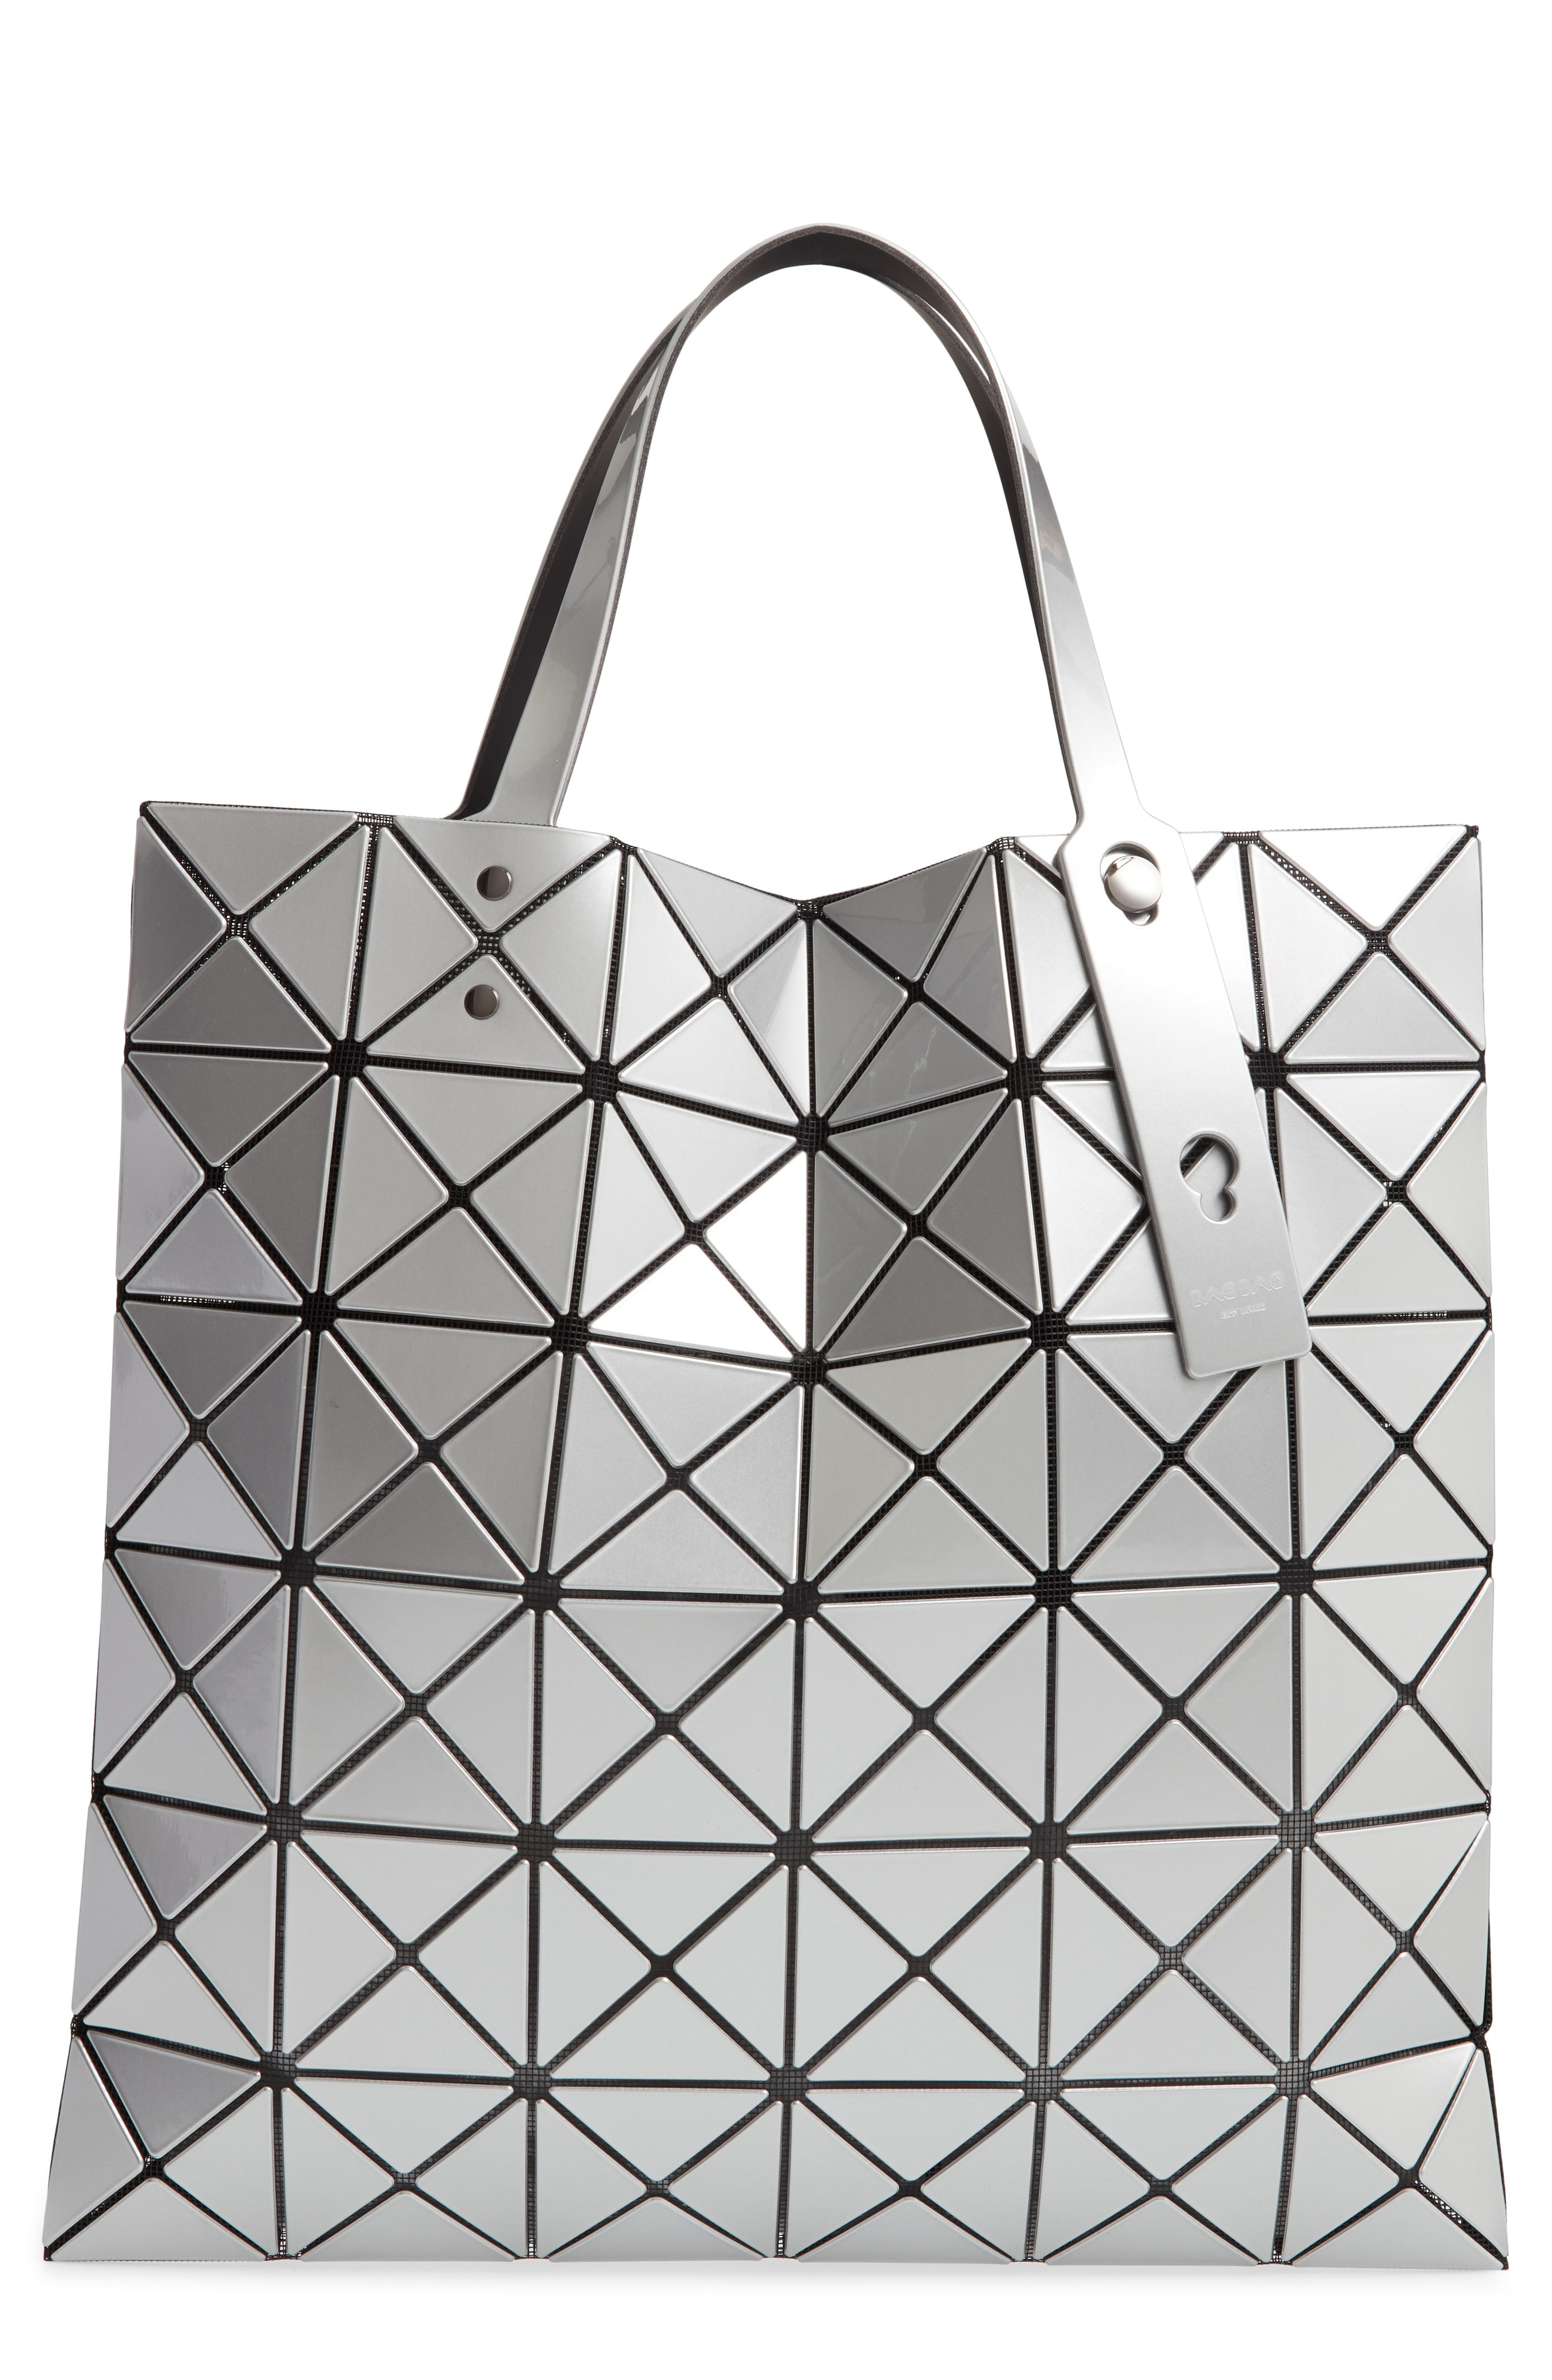 Bao Bao Issey Miyake Lucent Lightweight Collapsible Tote Bag In Silver 701189f2d276f